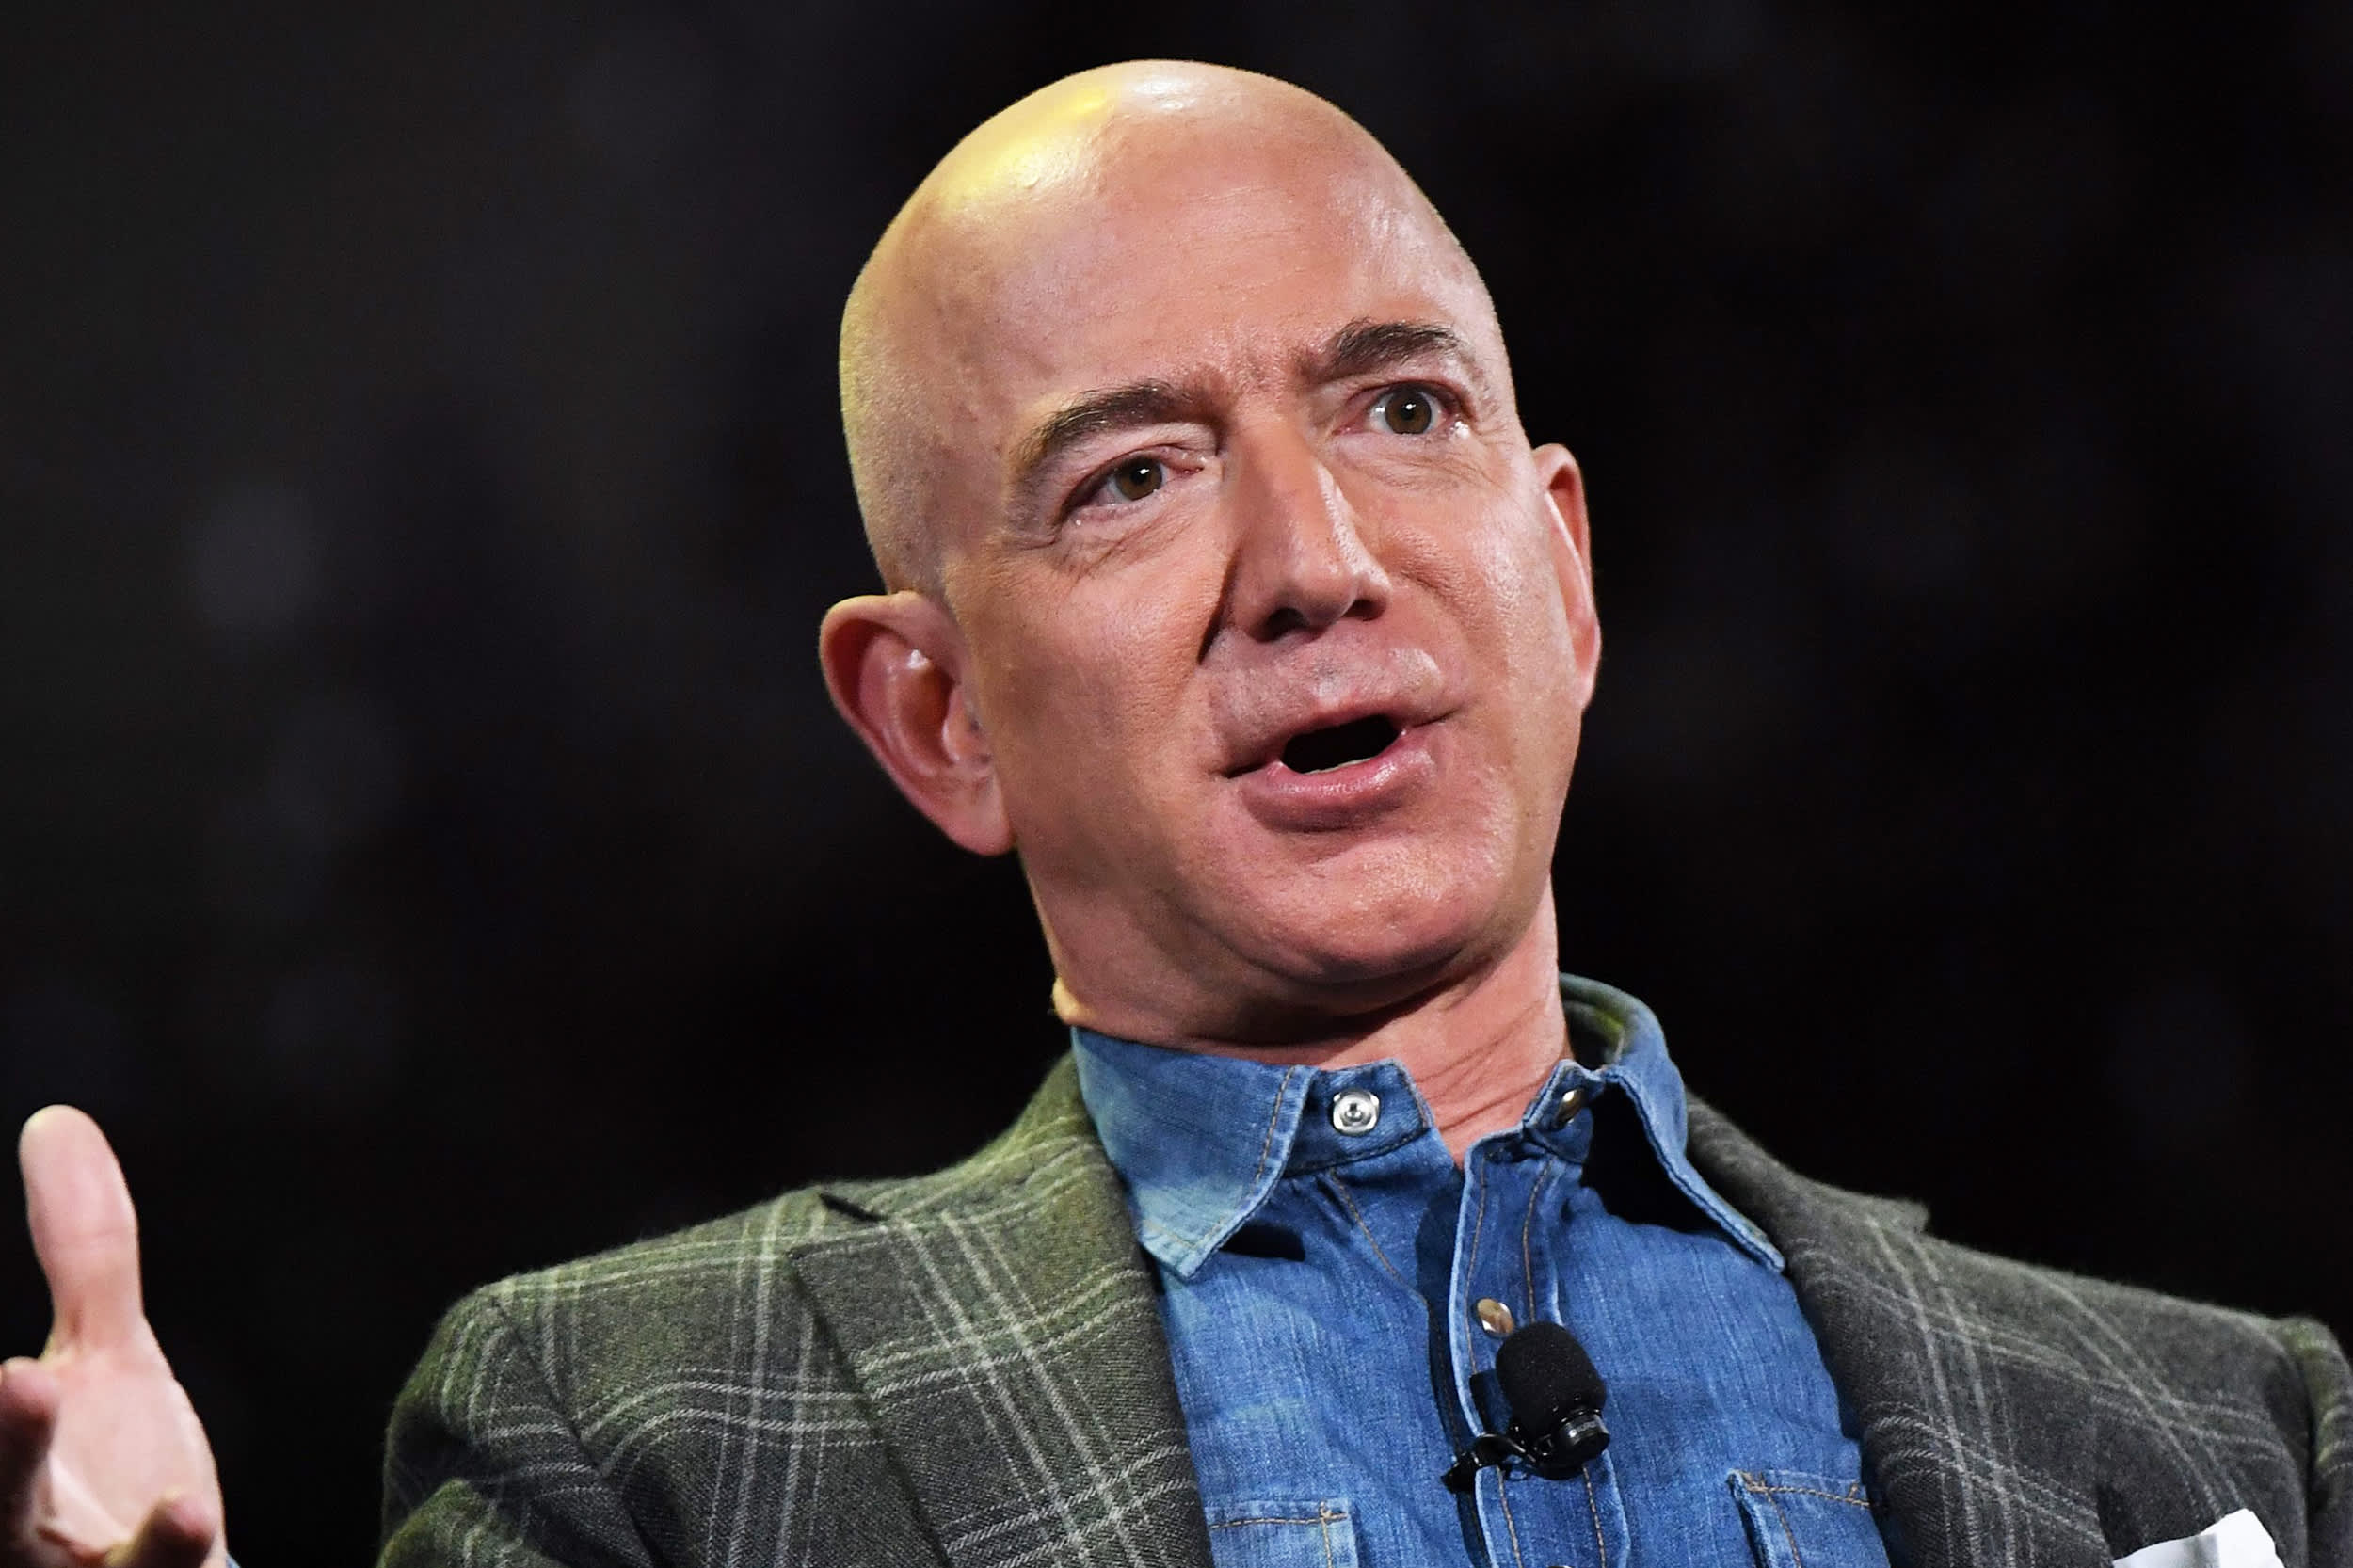 Goldman Sachs says Amazon earnings will beat the Street, so buy the stock